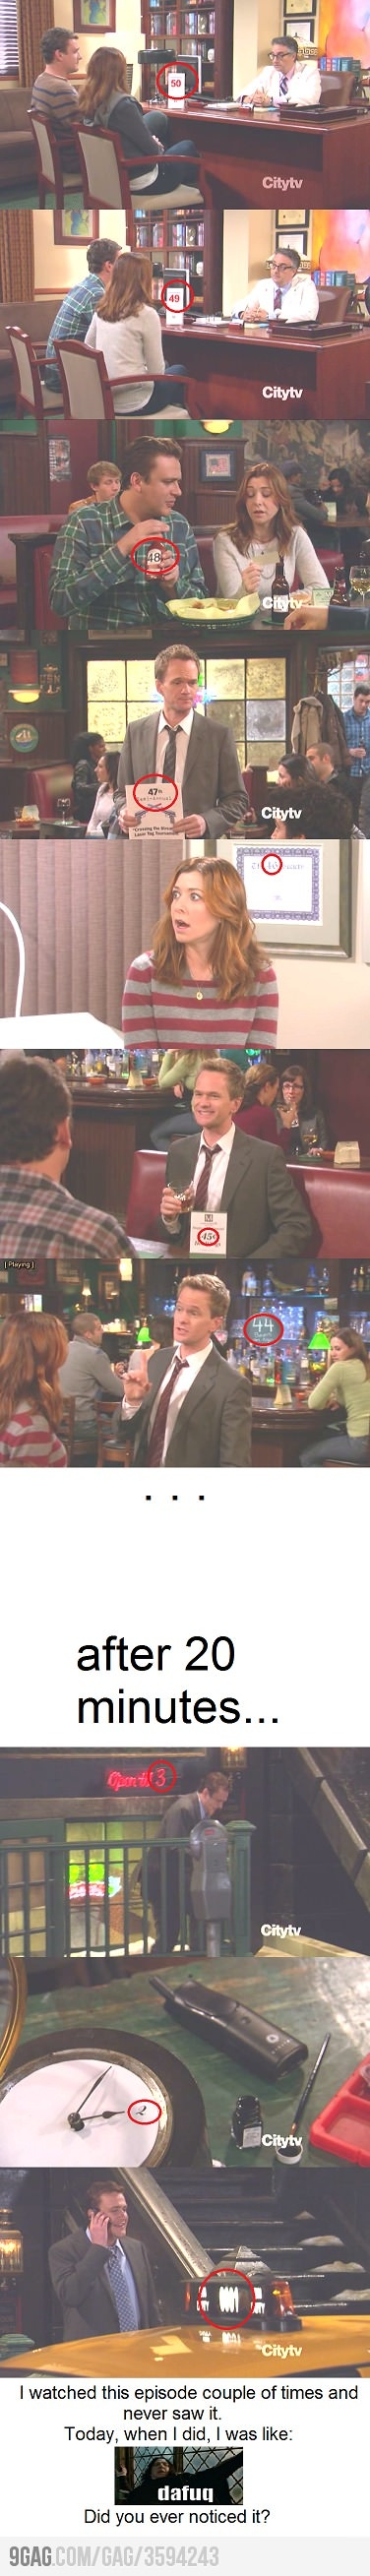 Just HIMYM episode.